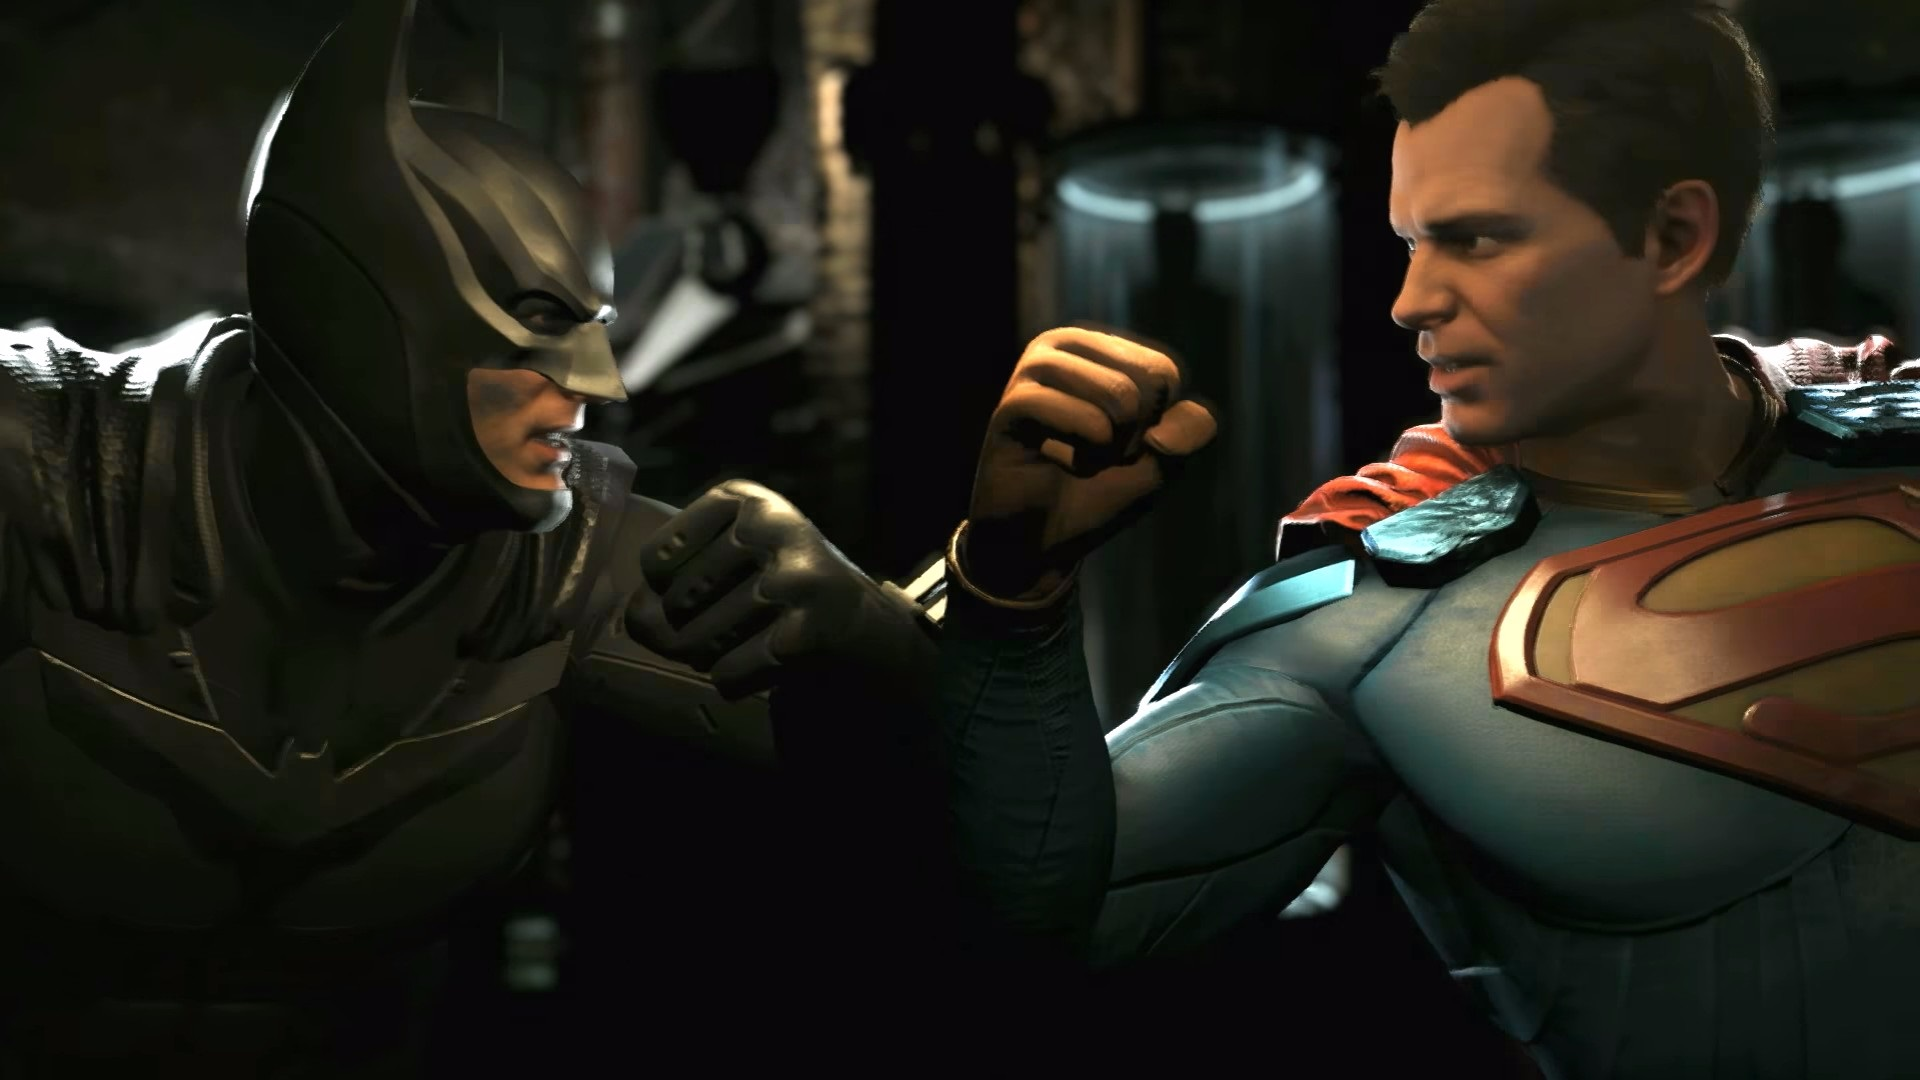 Injustice 2,Nether Realm,Warner Bros,Fighter Pack,Warner Bros. Interactive Entertainment,نسخه رایگان بازی Injustice 2,بازی Injustice 2,آپدیت بازی Injustice 2,اینجاستیس 2,Injustice 2 DLC,Injustice 2 Fighter Pack 3,اخبار بازی Injustice 2,انتشار بازی Injustice 2 برای PC,لاک پشت های نینجا در بازی Injustice 2,لاک پشت های نینجا,فایترپک 3,اینجاستیس